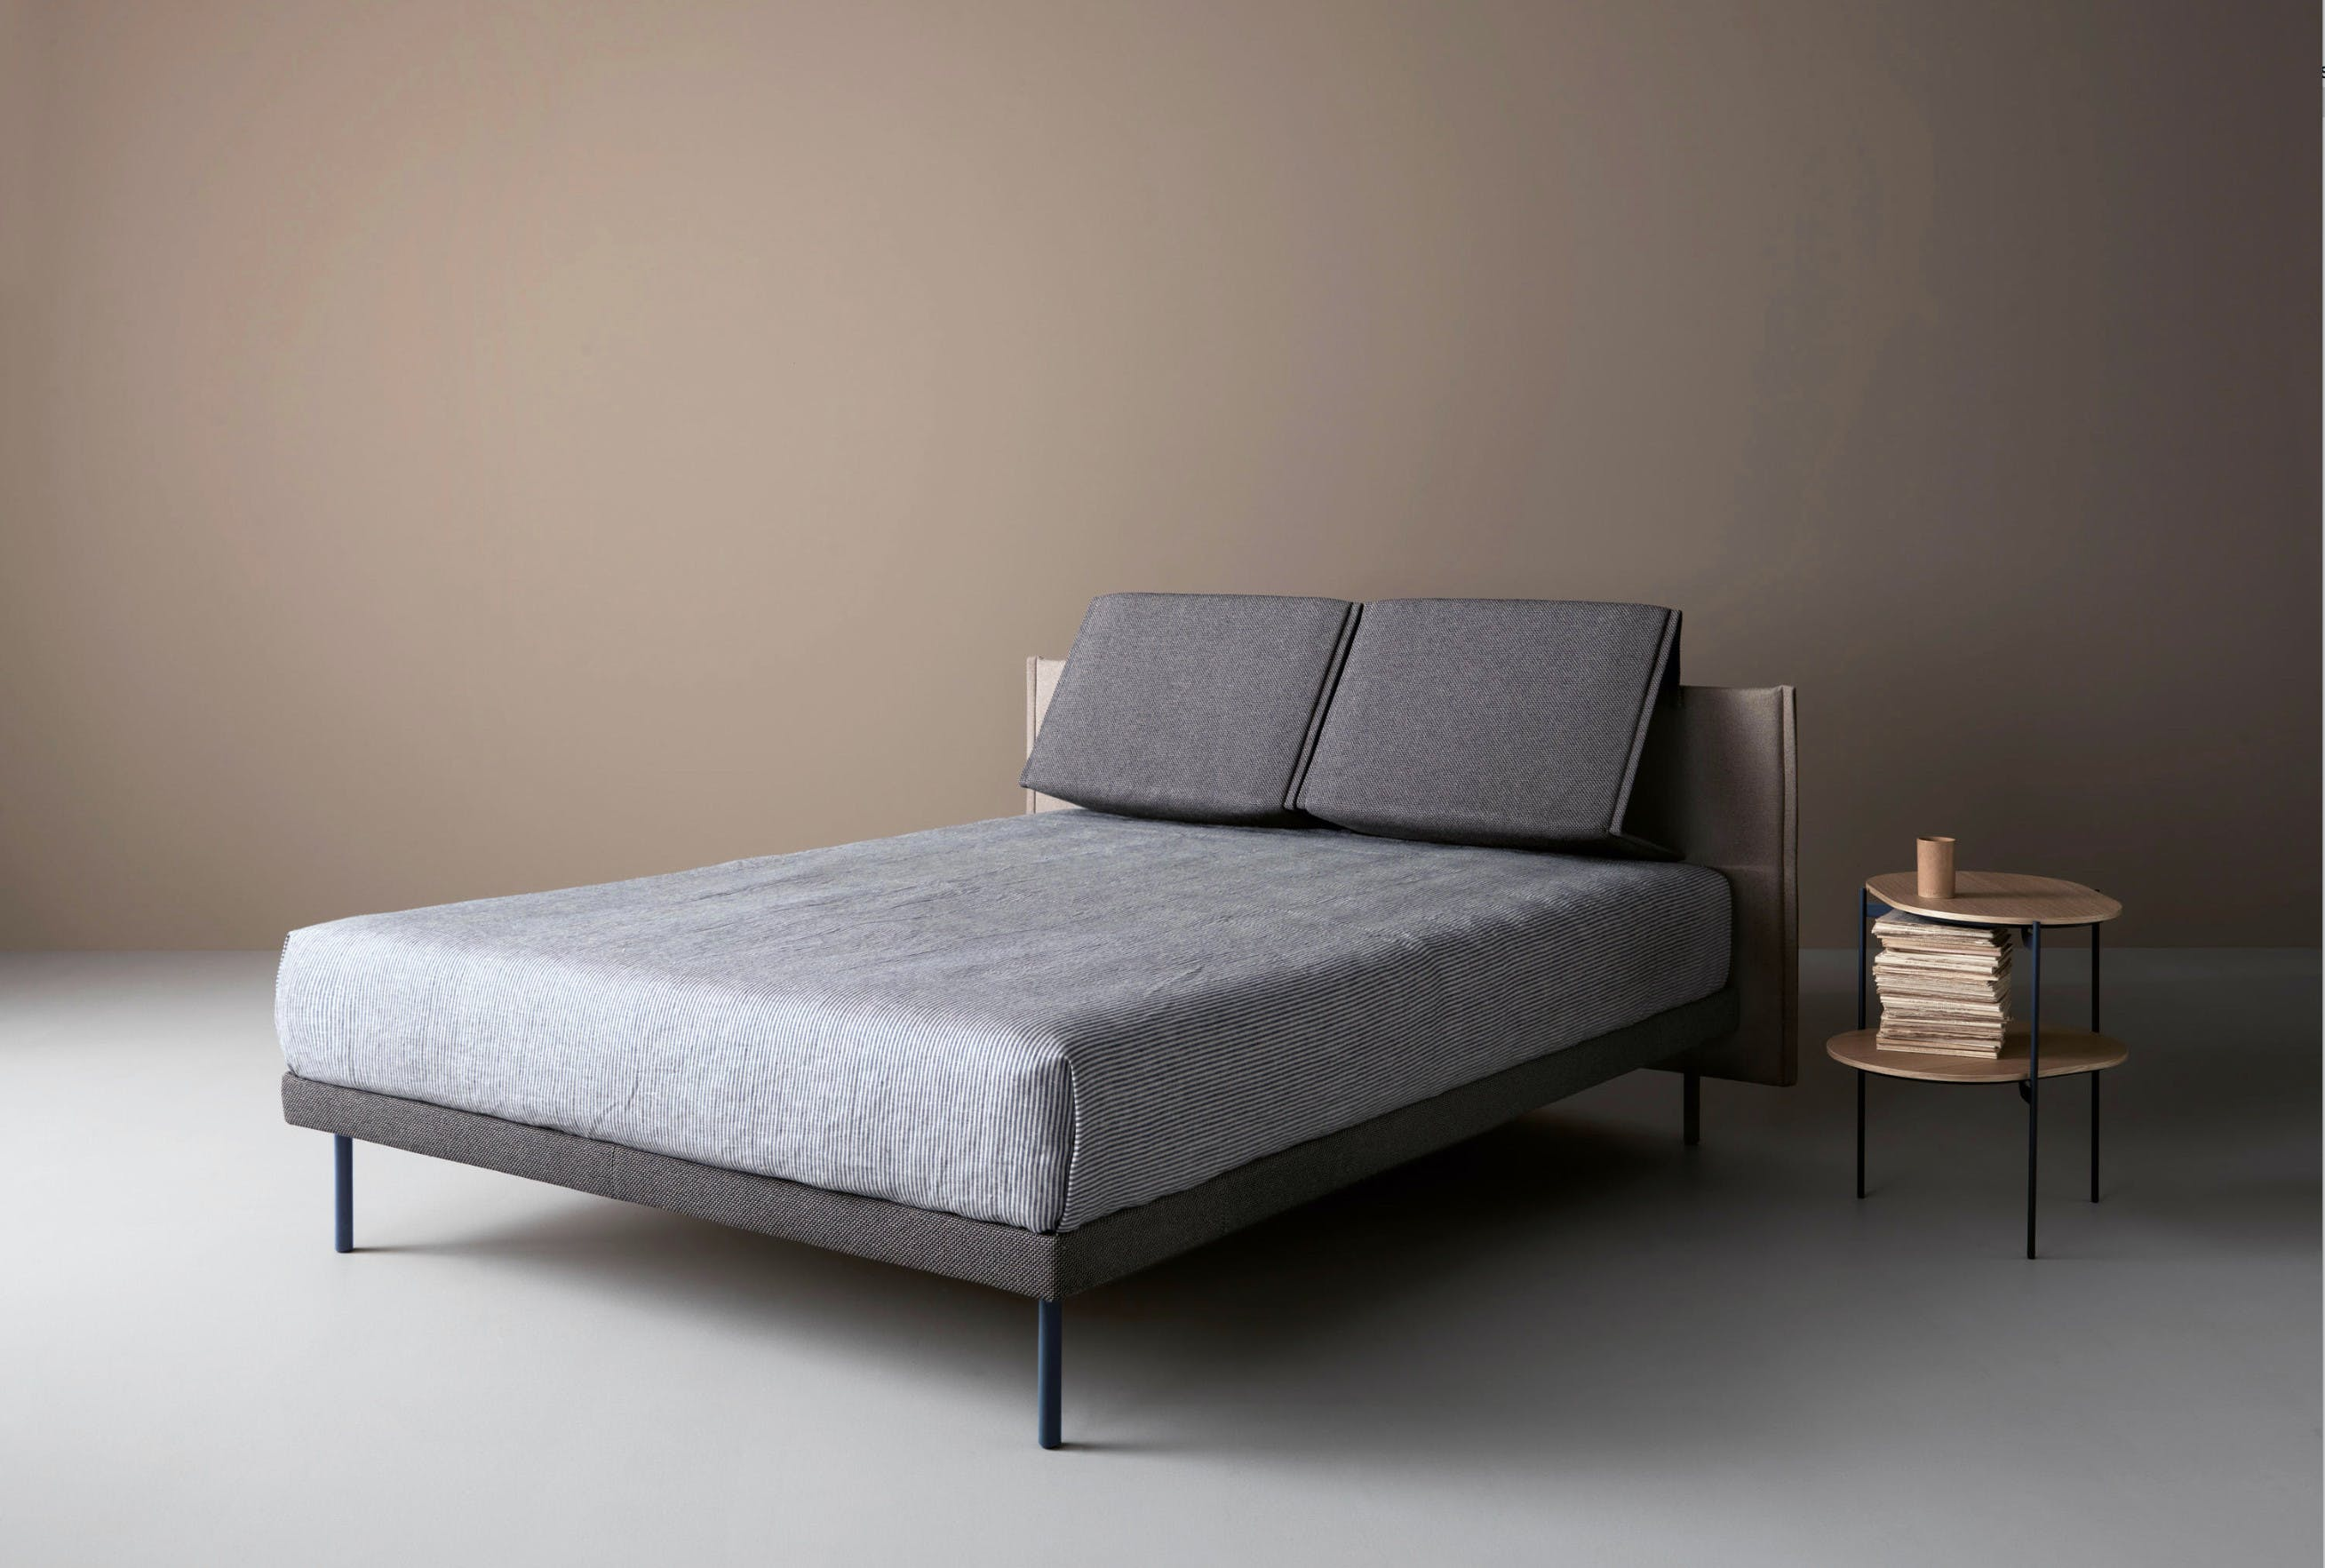 Caccaro Plie Bed Angle Haute Living